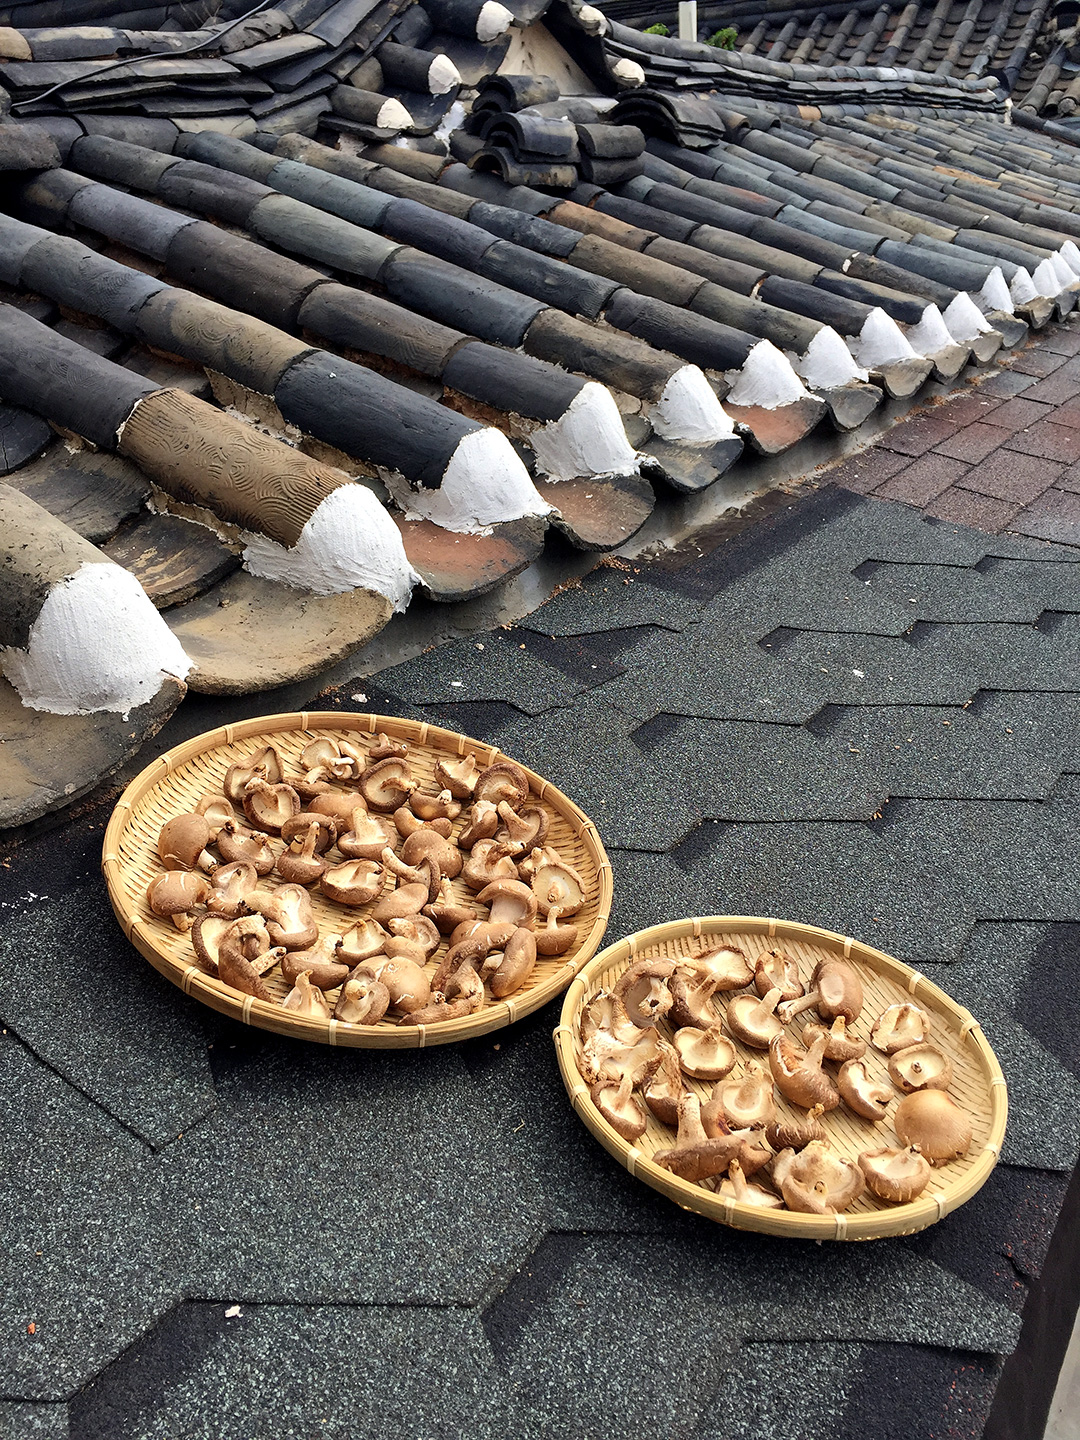 Mushrooms laying out to dry on top of the clay tile roofs.